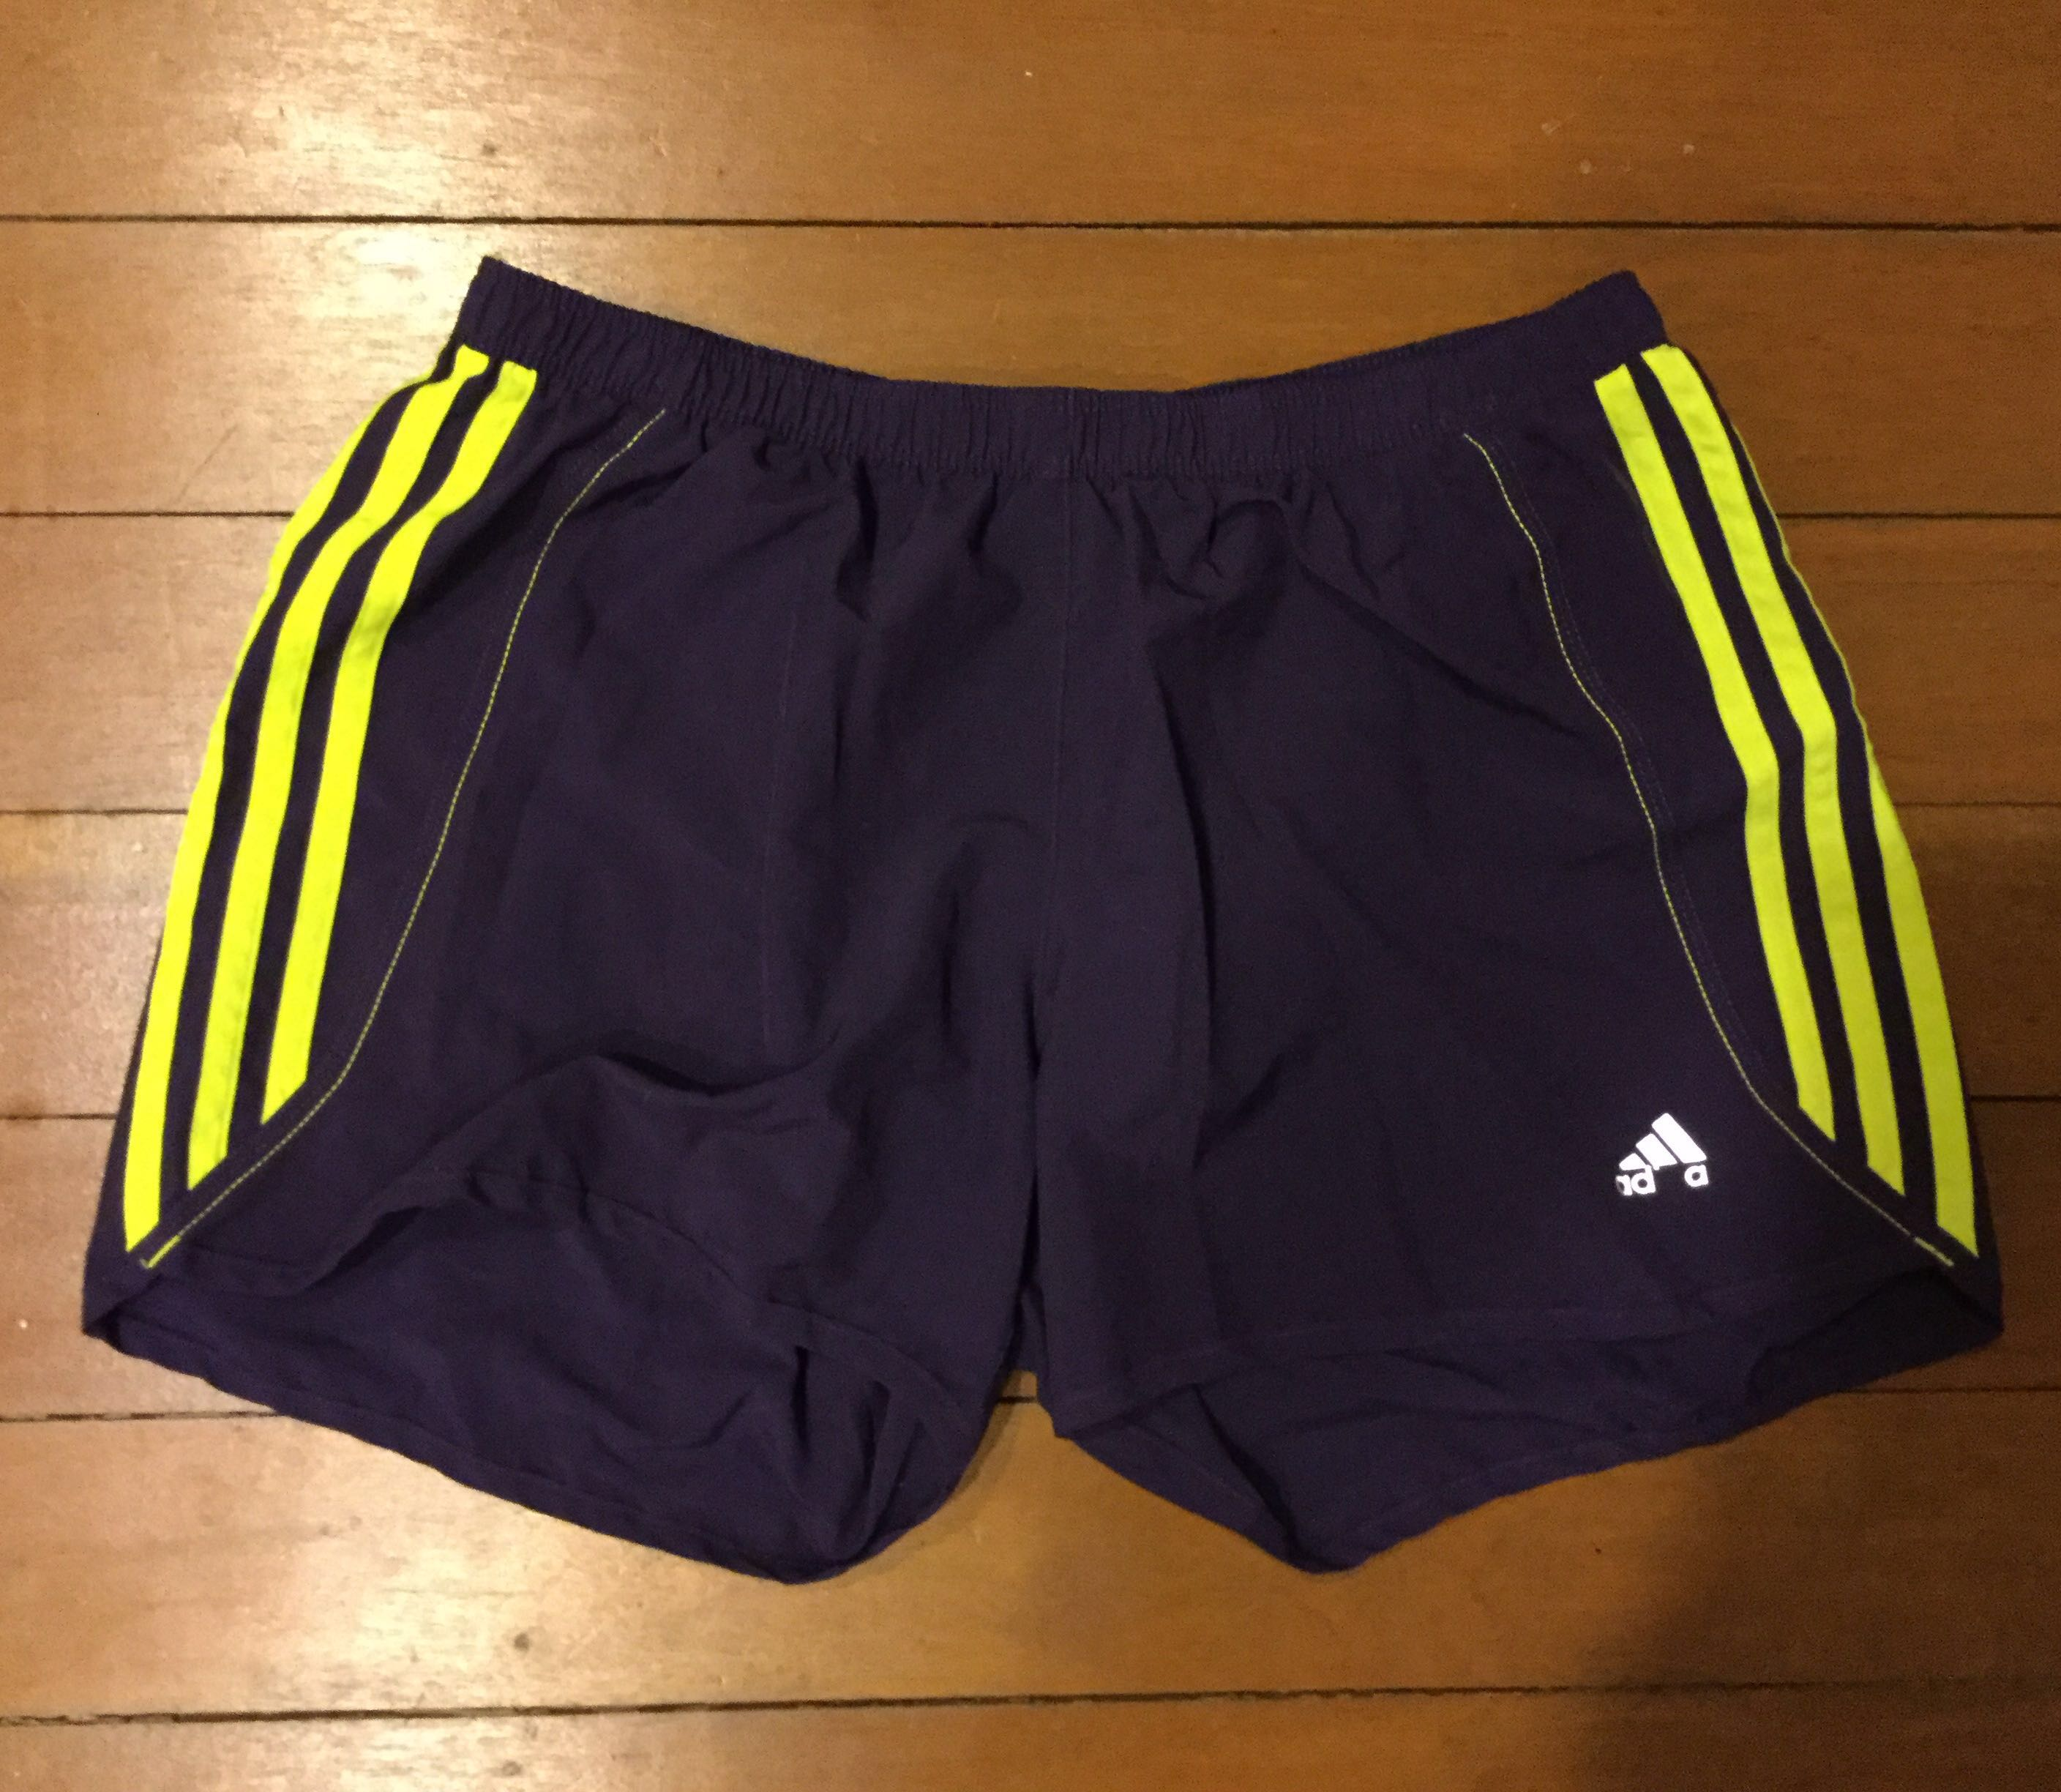 ead664ff7588 Adidas Climalite Dark Purple Shorts with Yellow Stripes